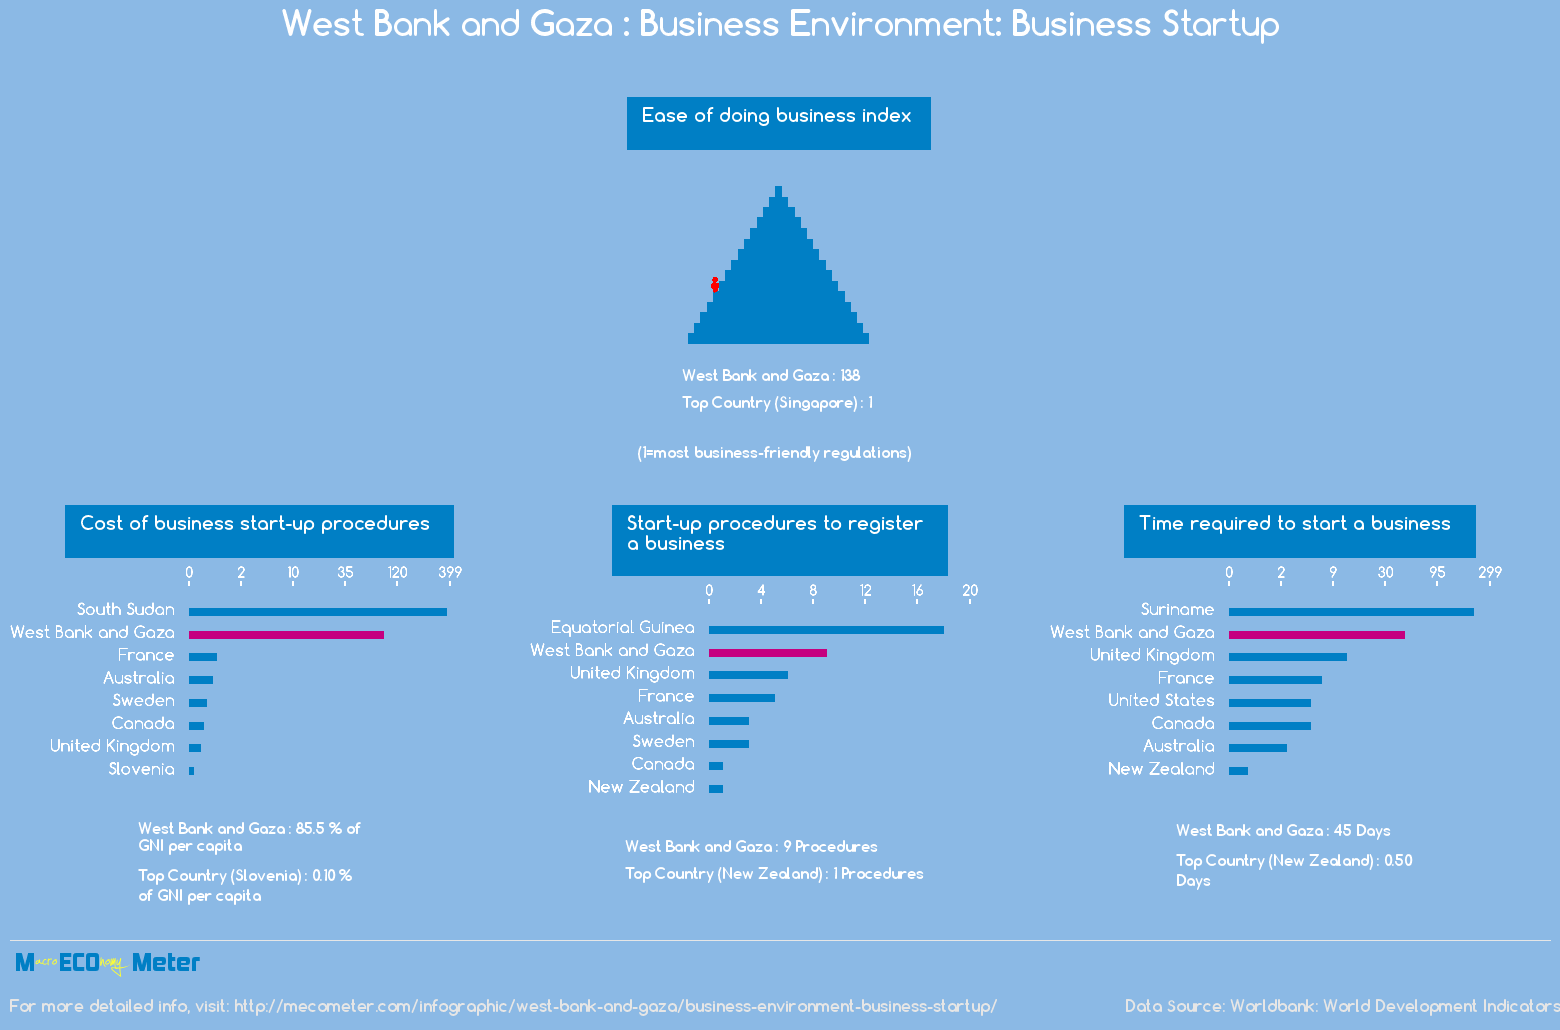 West Bank and Gaza : Business Environment: Business Startup